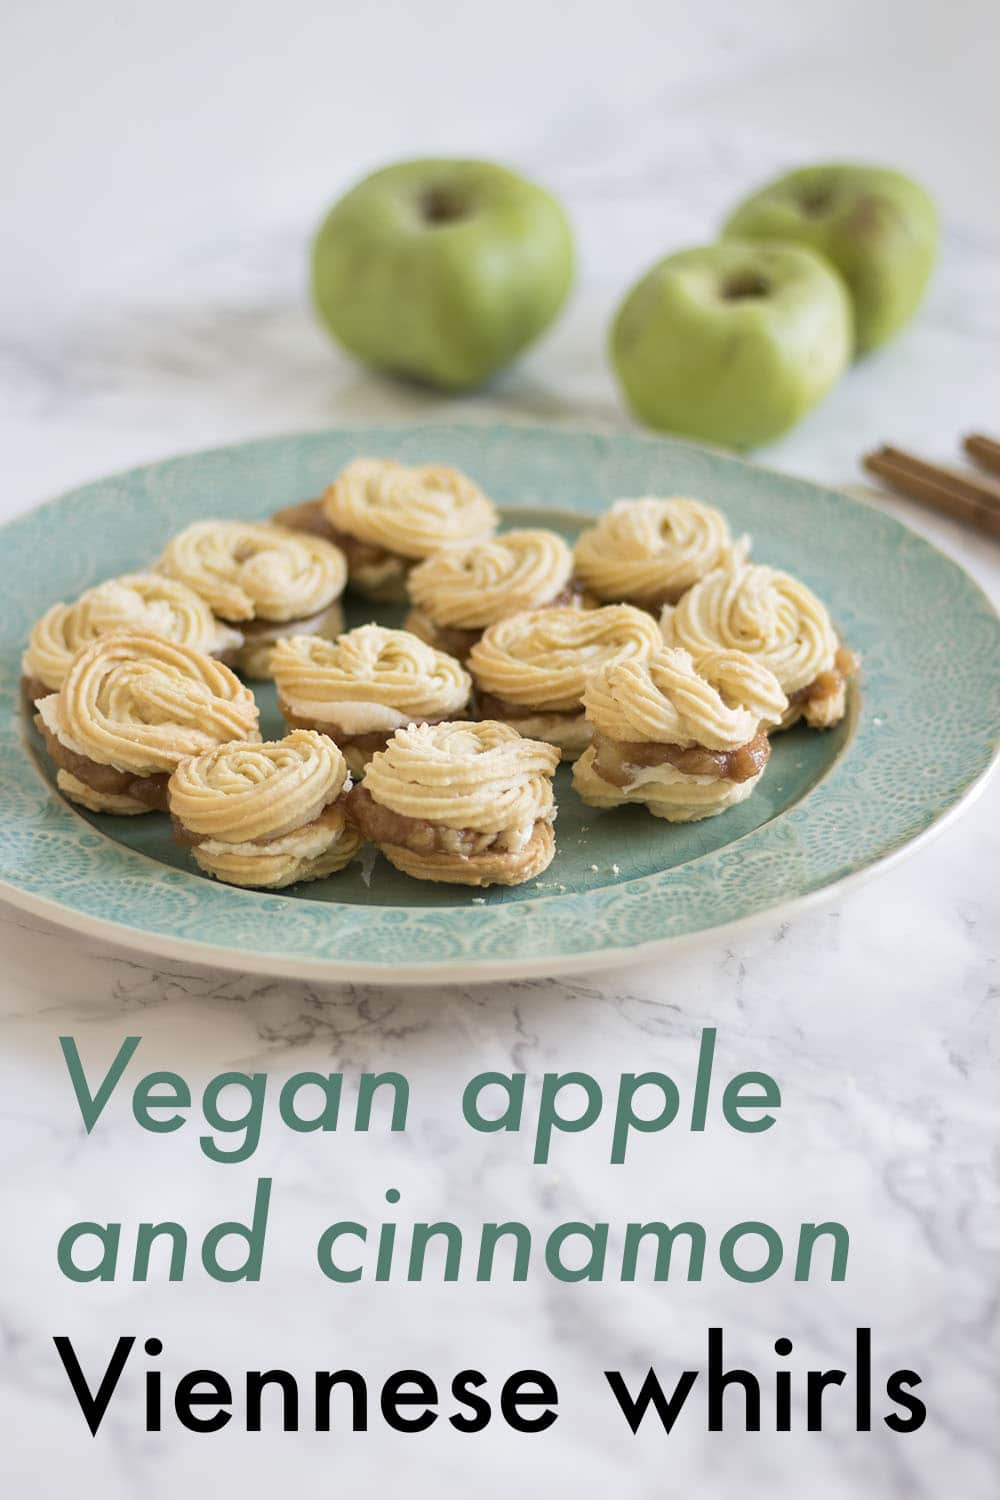 vegan viennese whirls recipe with apple and cinnamon